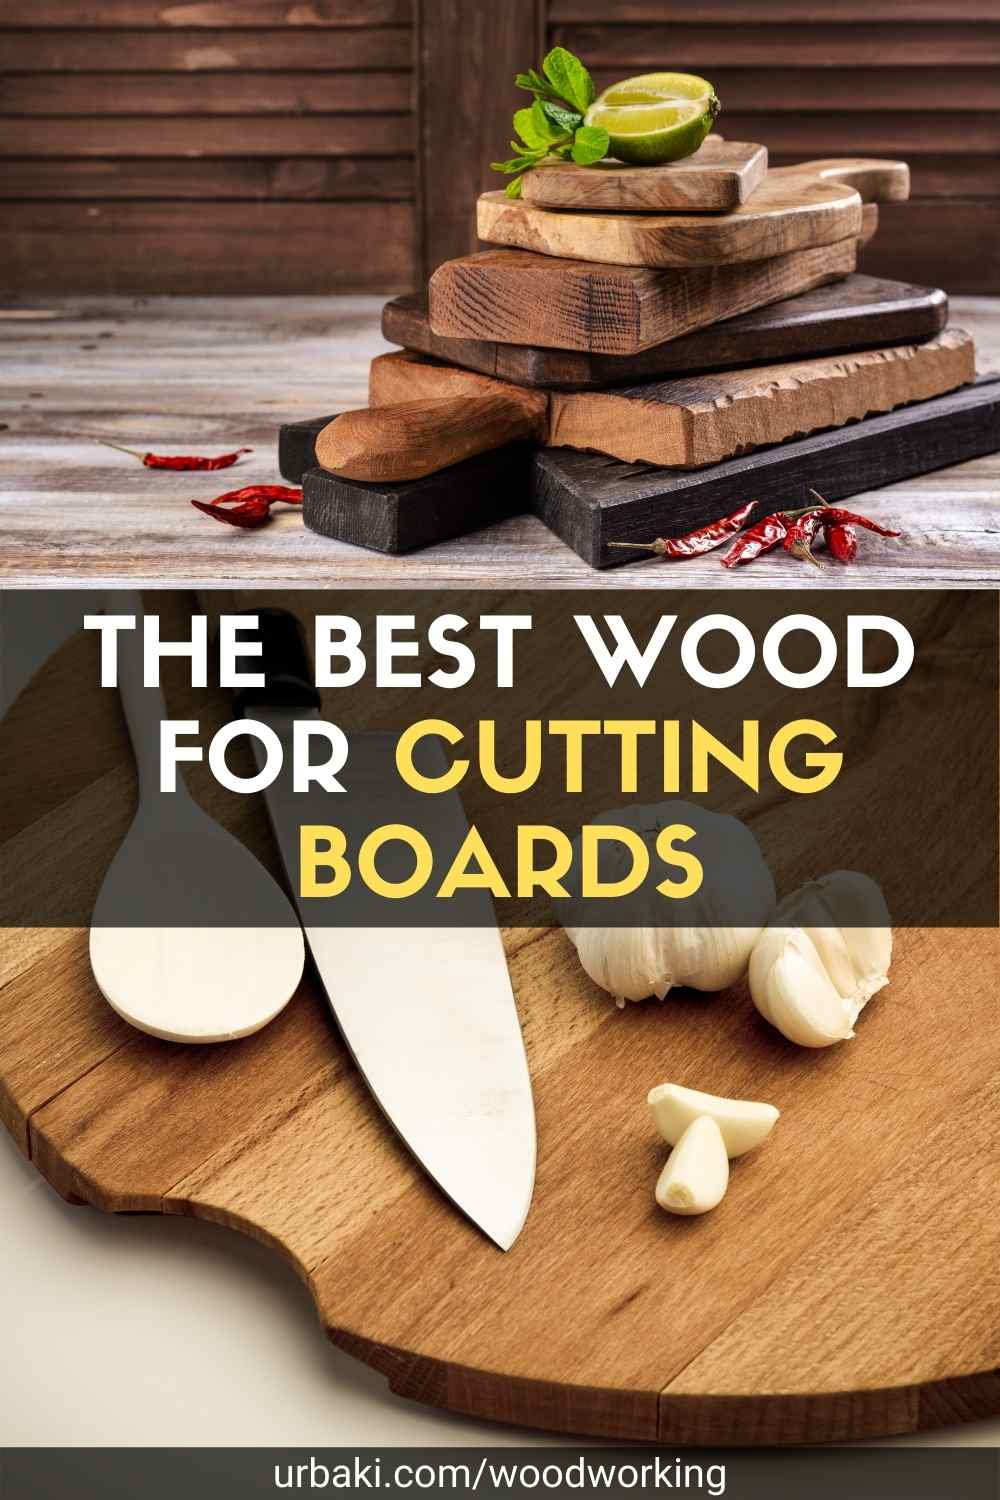 The Best Wood for Cutting Boards pin